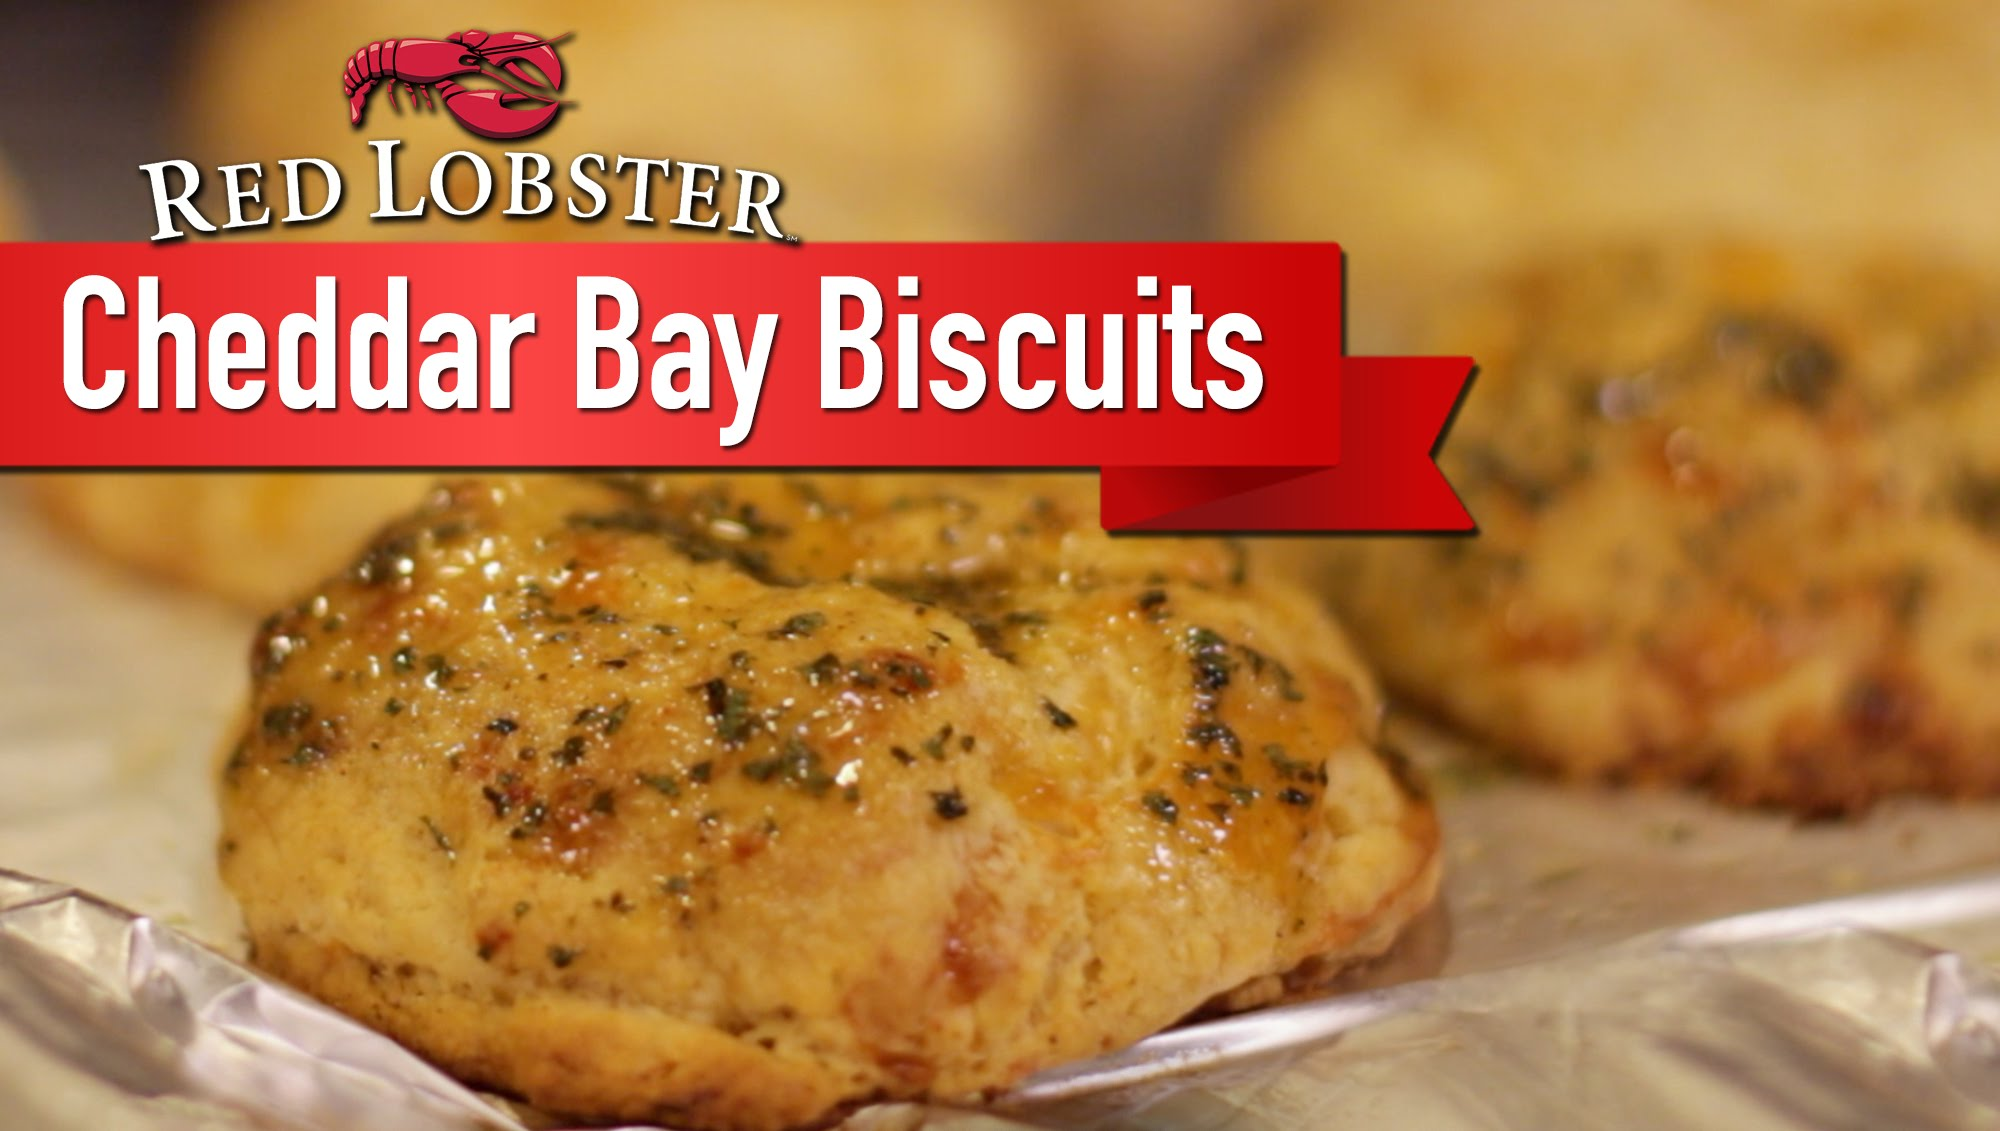 Cheddar-Bay-biscuits-red-lobster